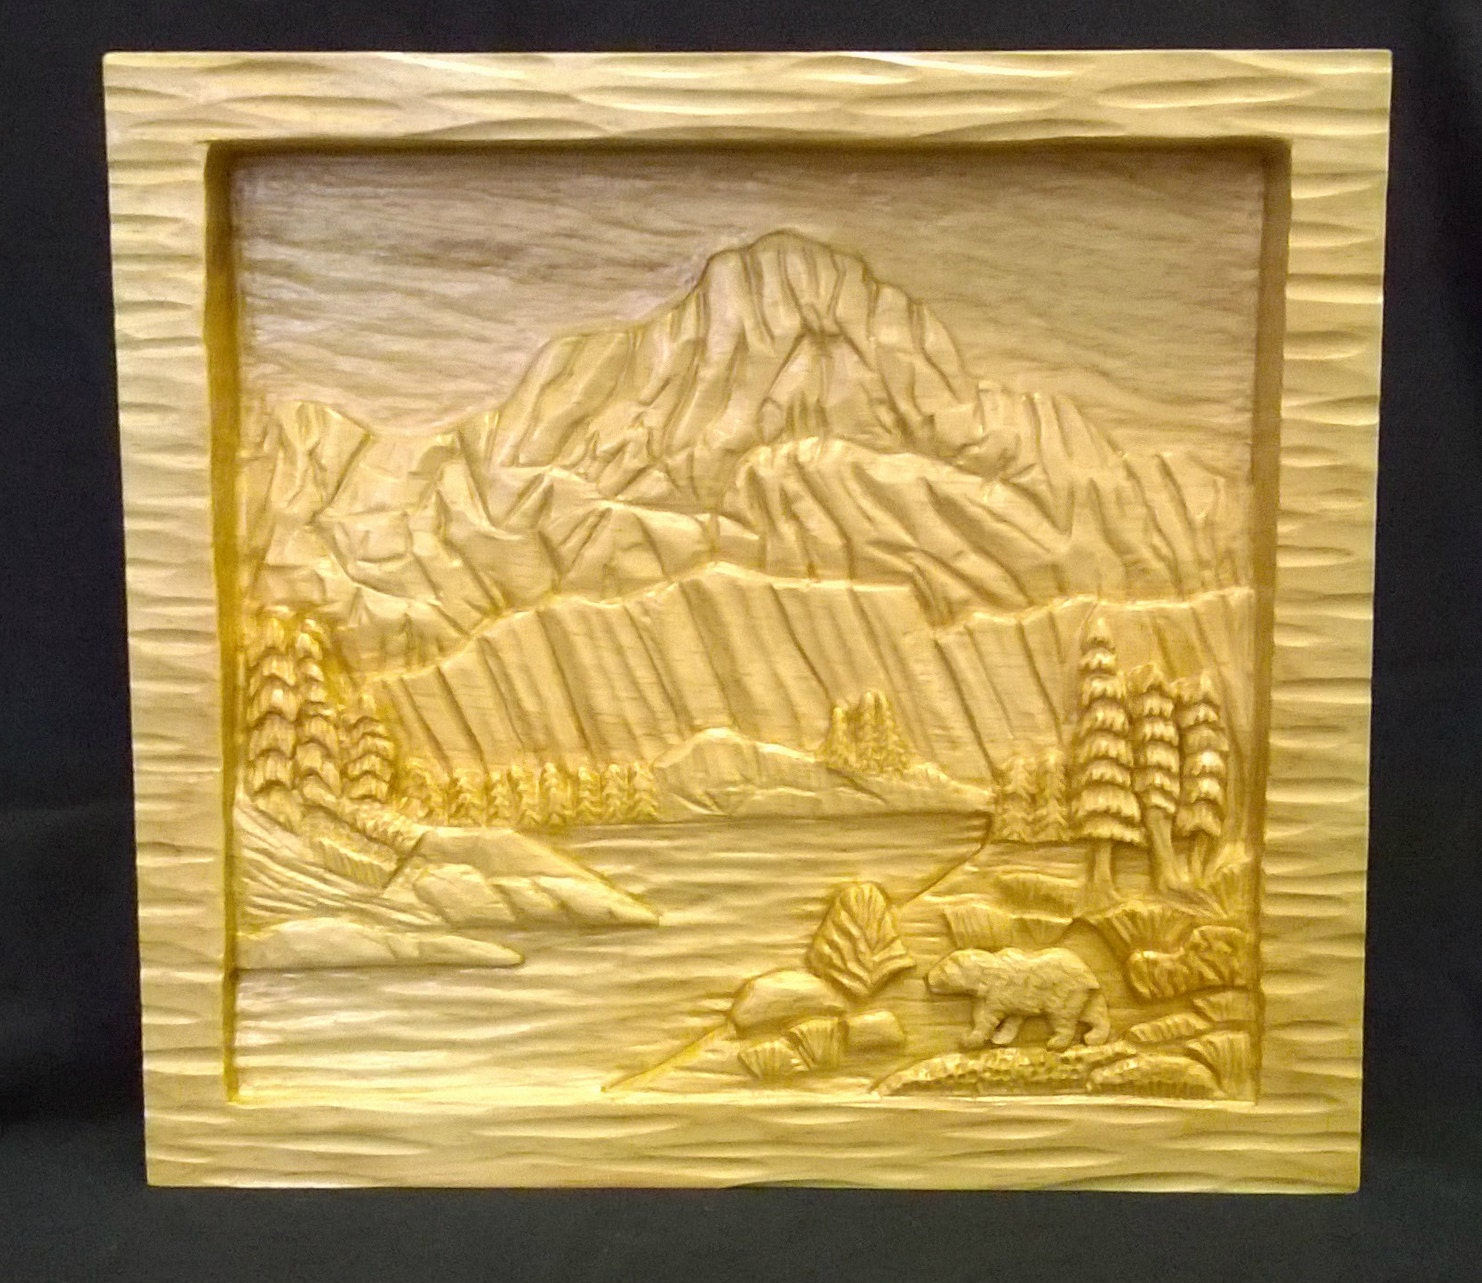 Mountain lake relief carving with bear on by idahowoodcarvings